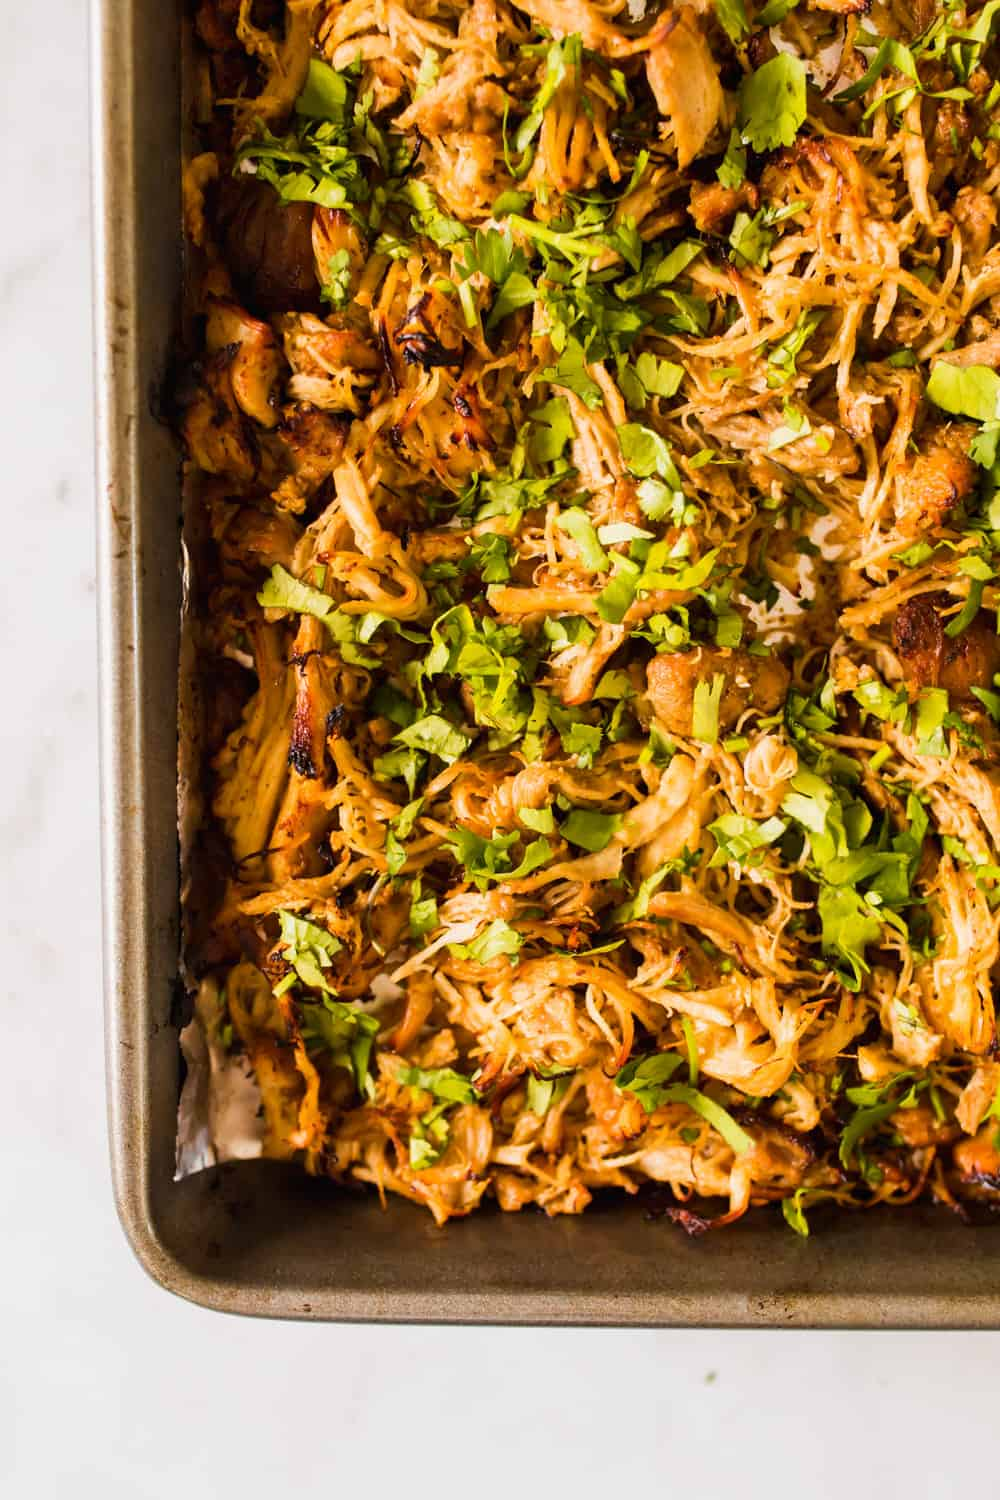 baking sheet filled with browned shredded chicken